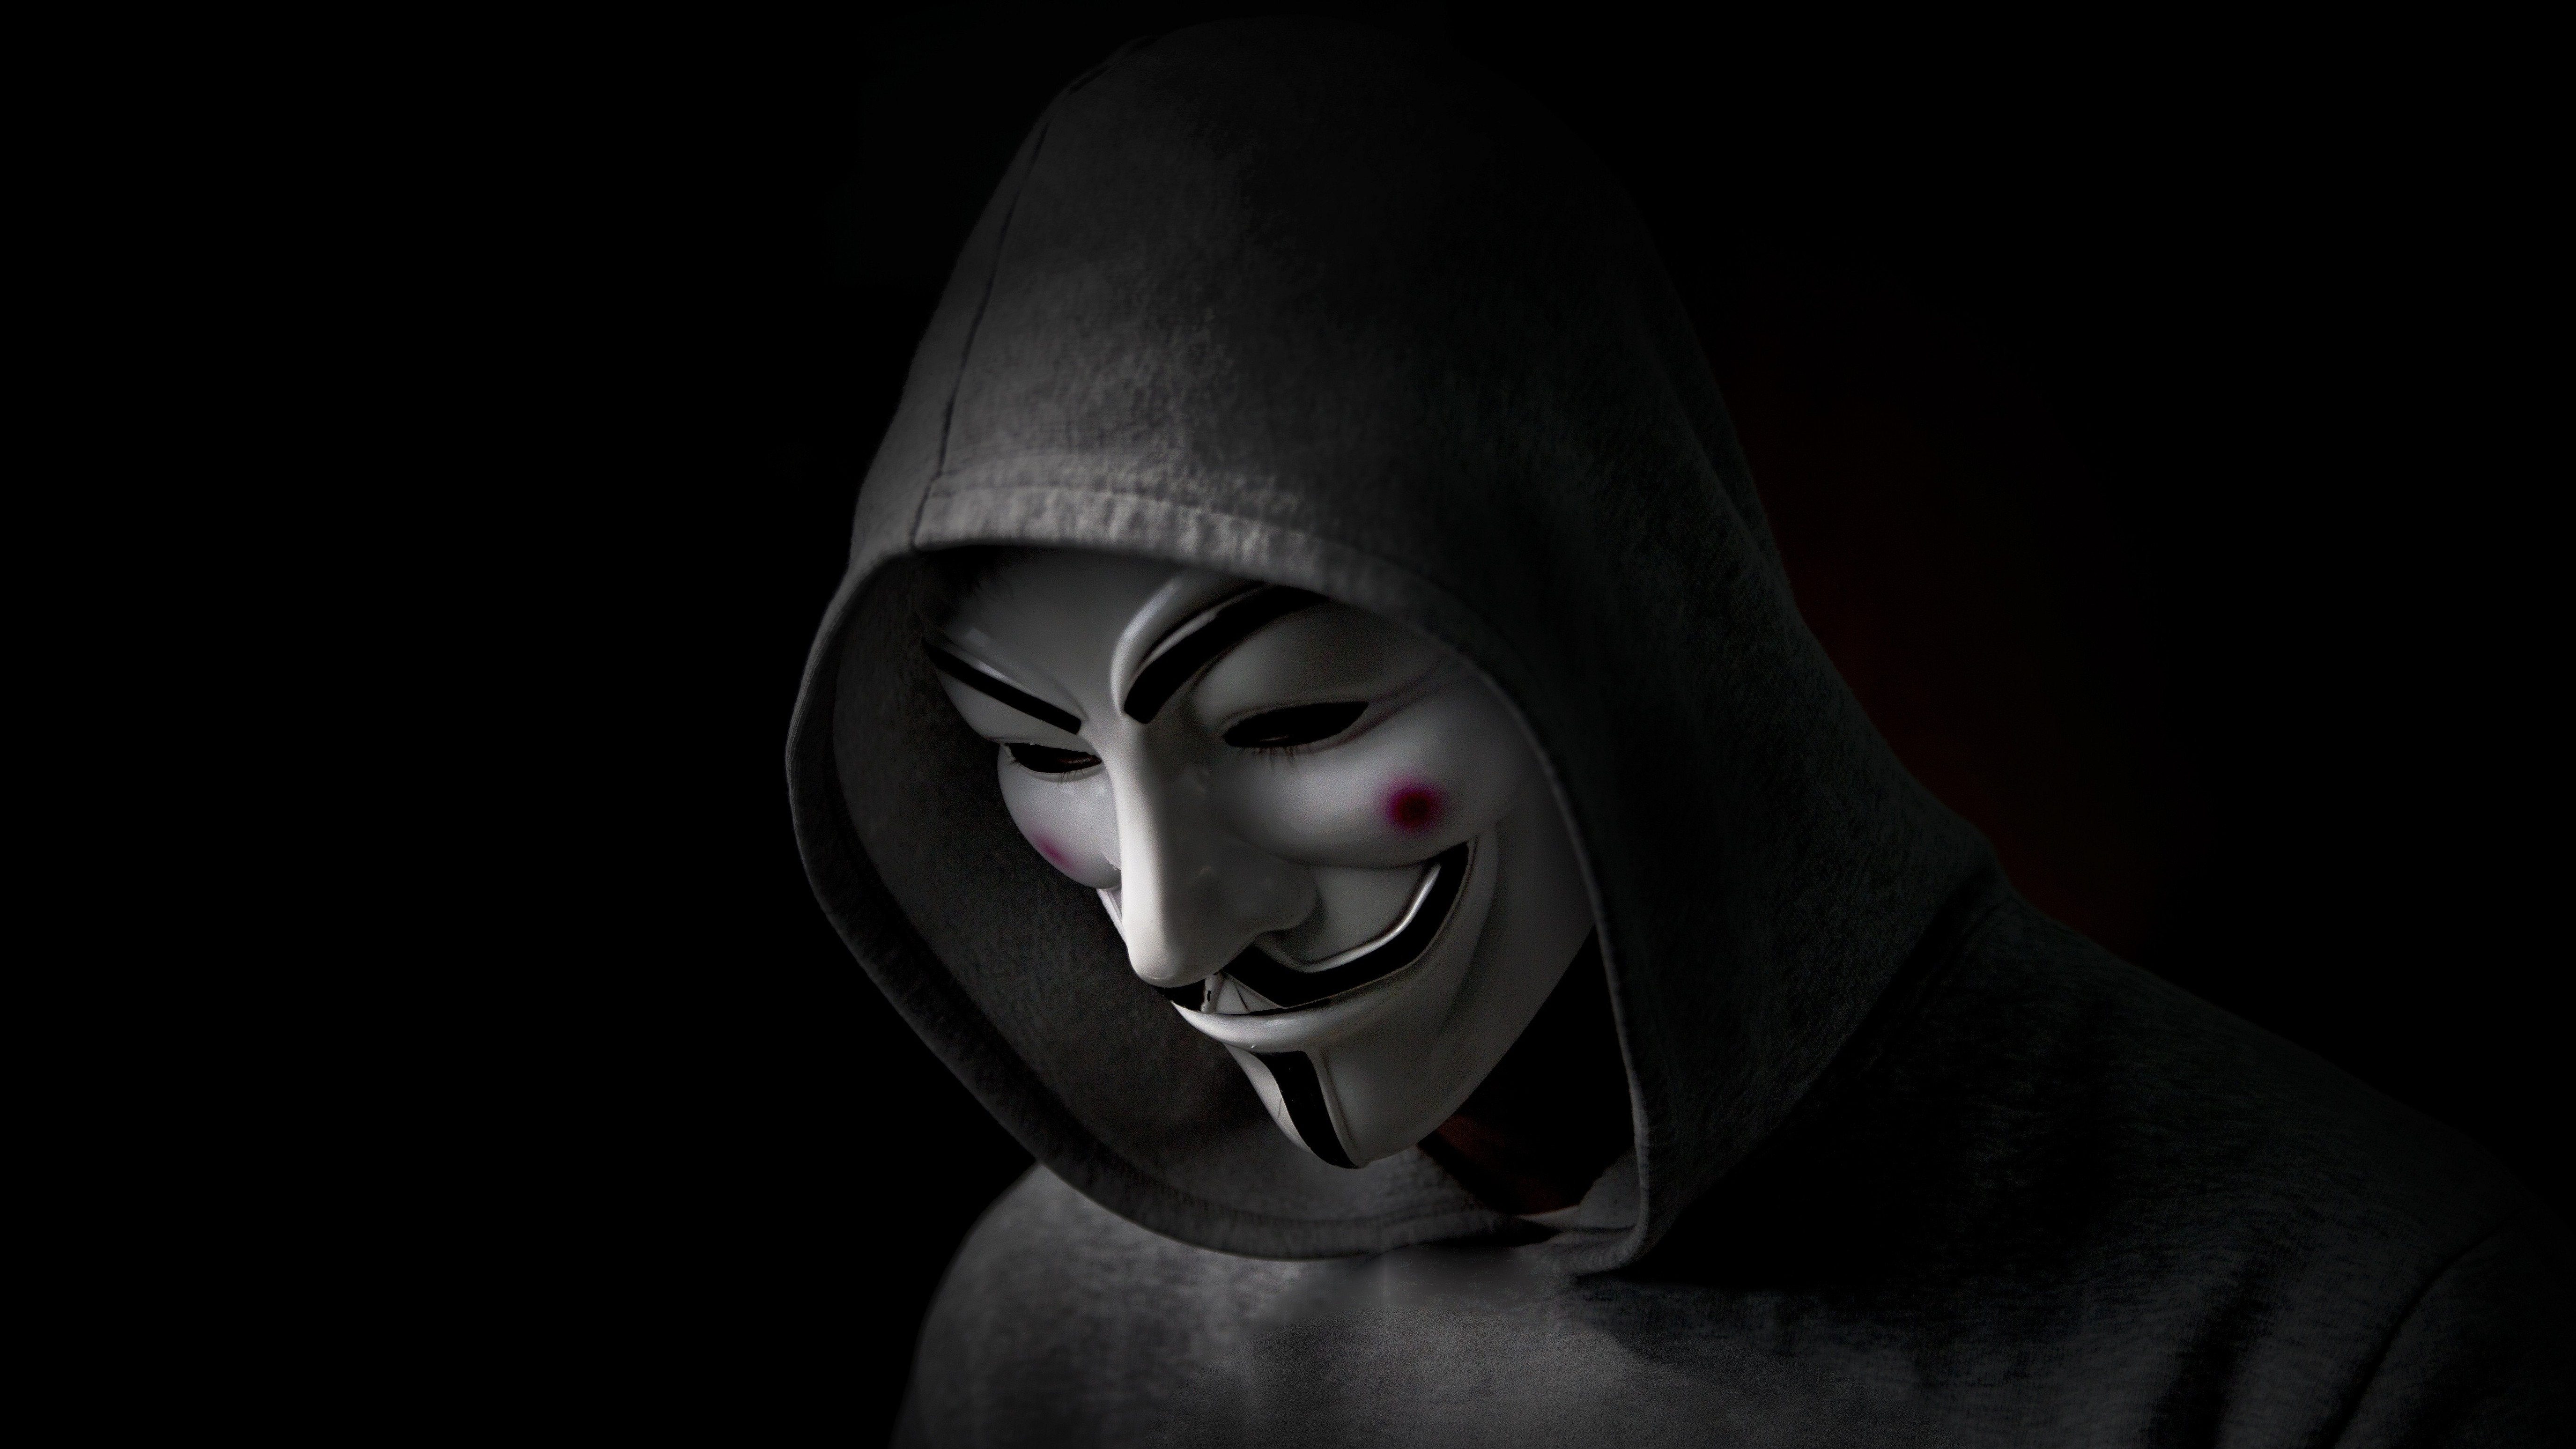 hacker hoodie anonymus wallpapers 4k hd computer backgrounds